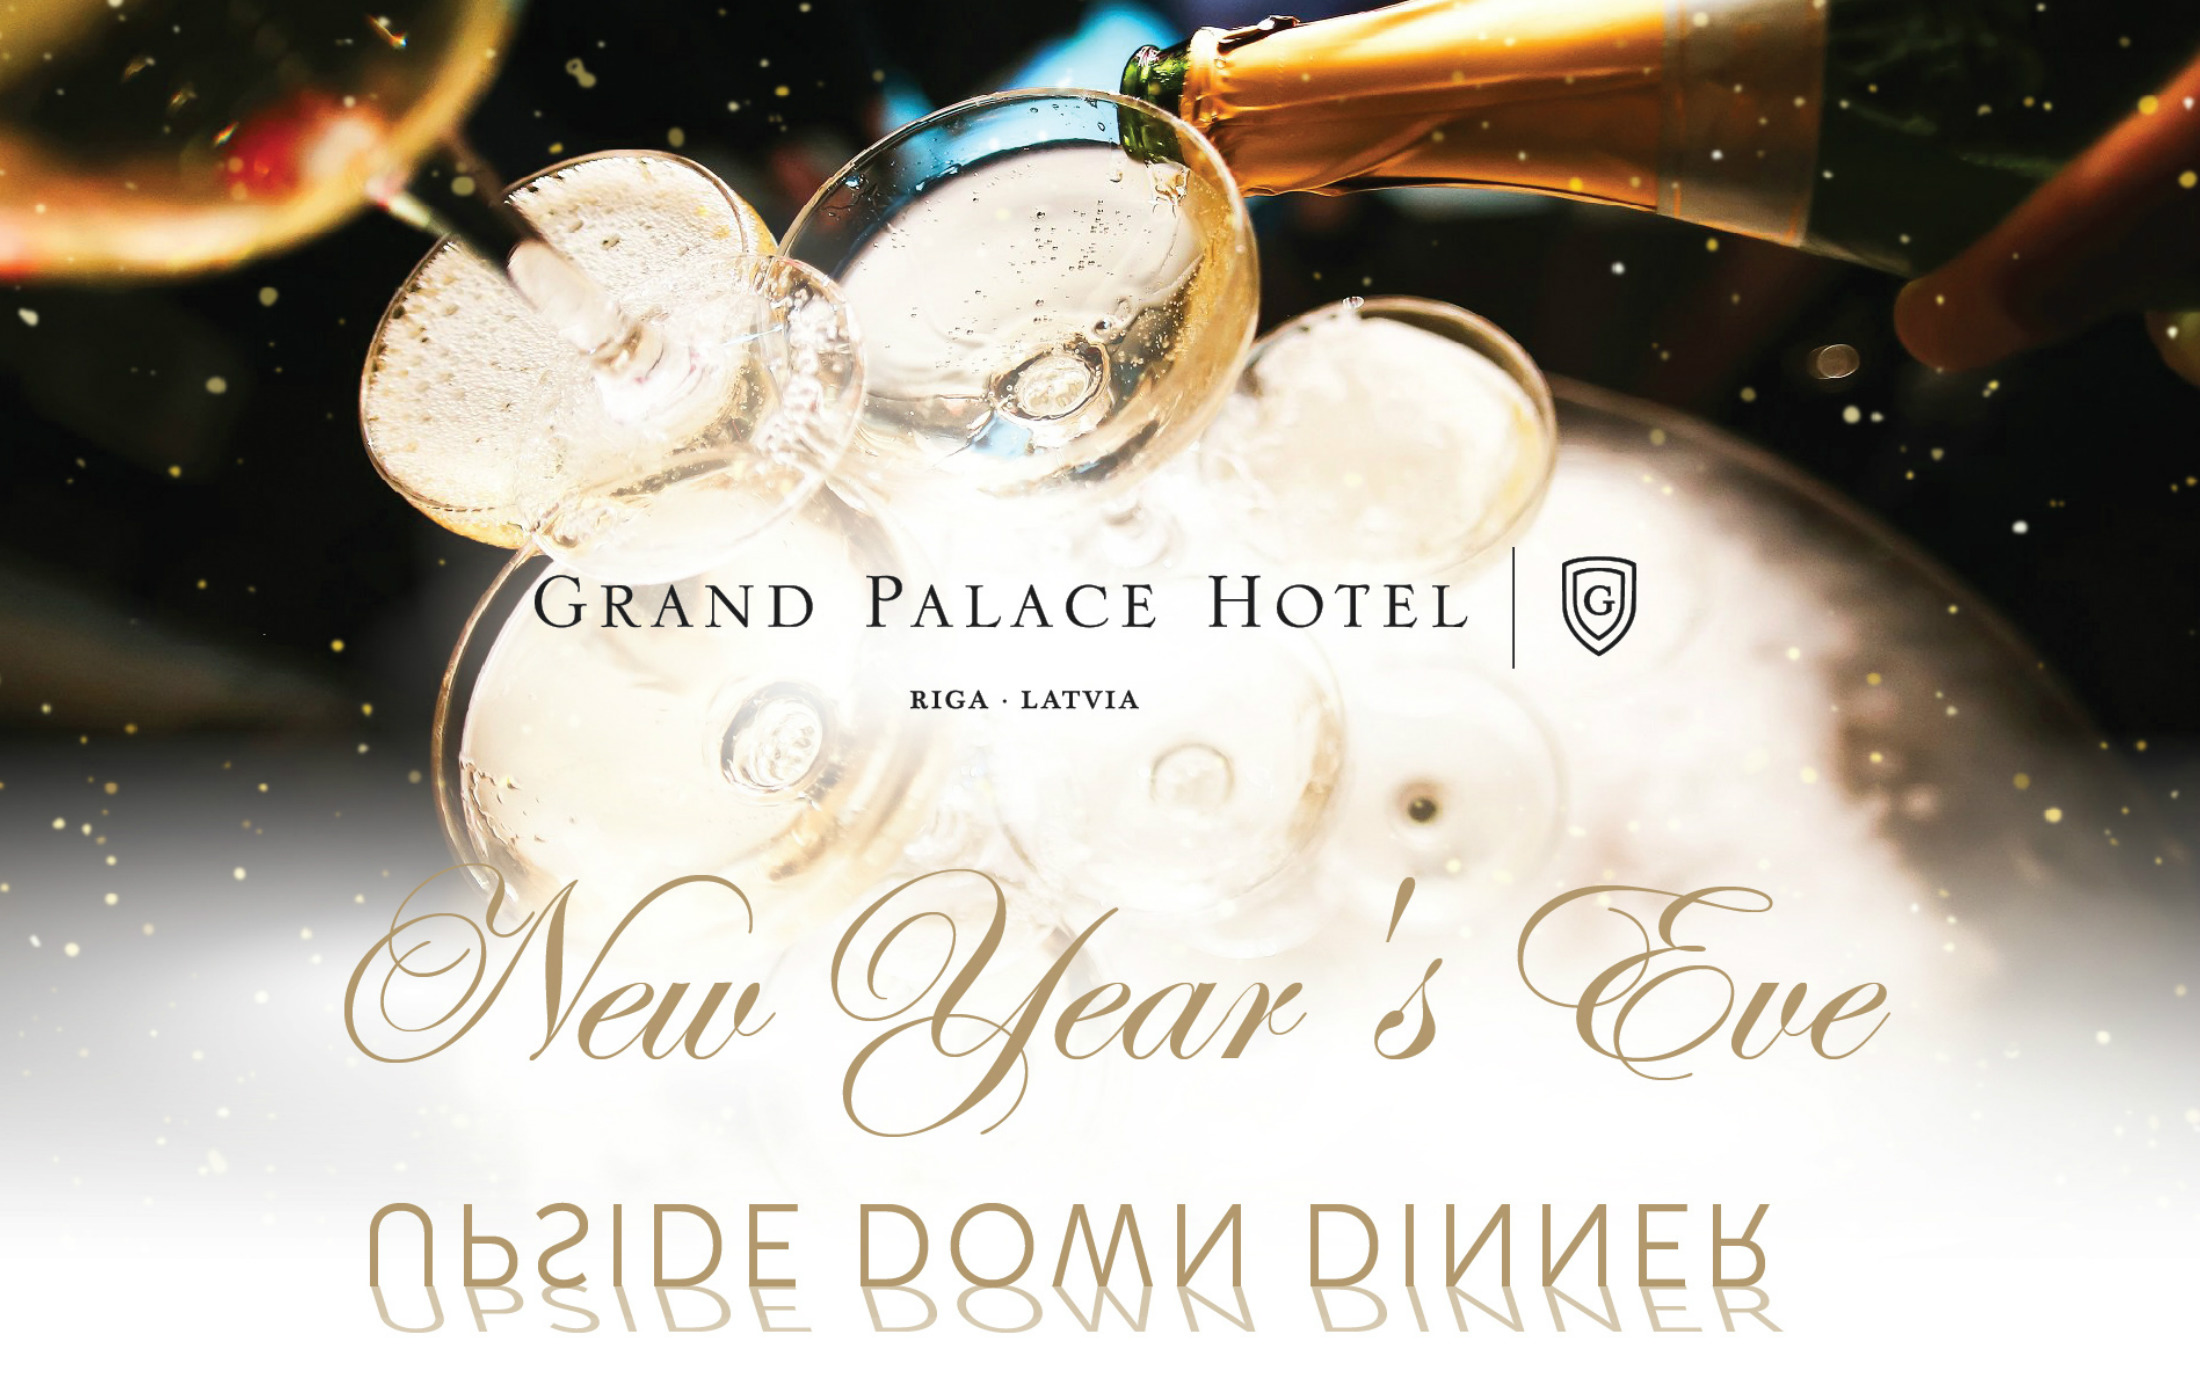 new year s eve celebration in grand palace hotel